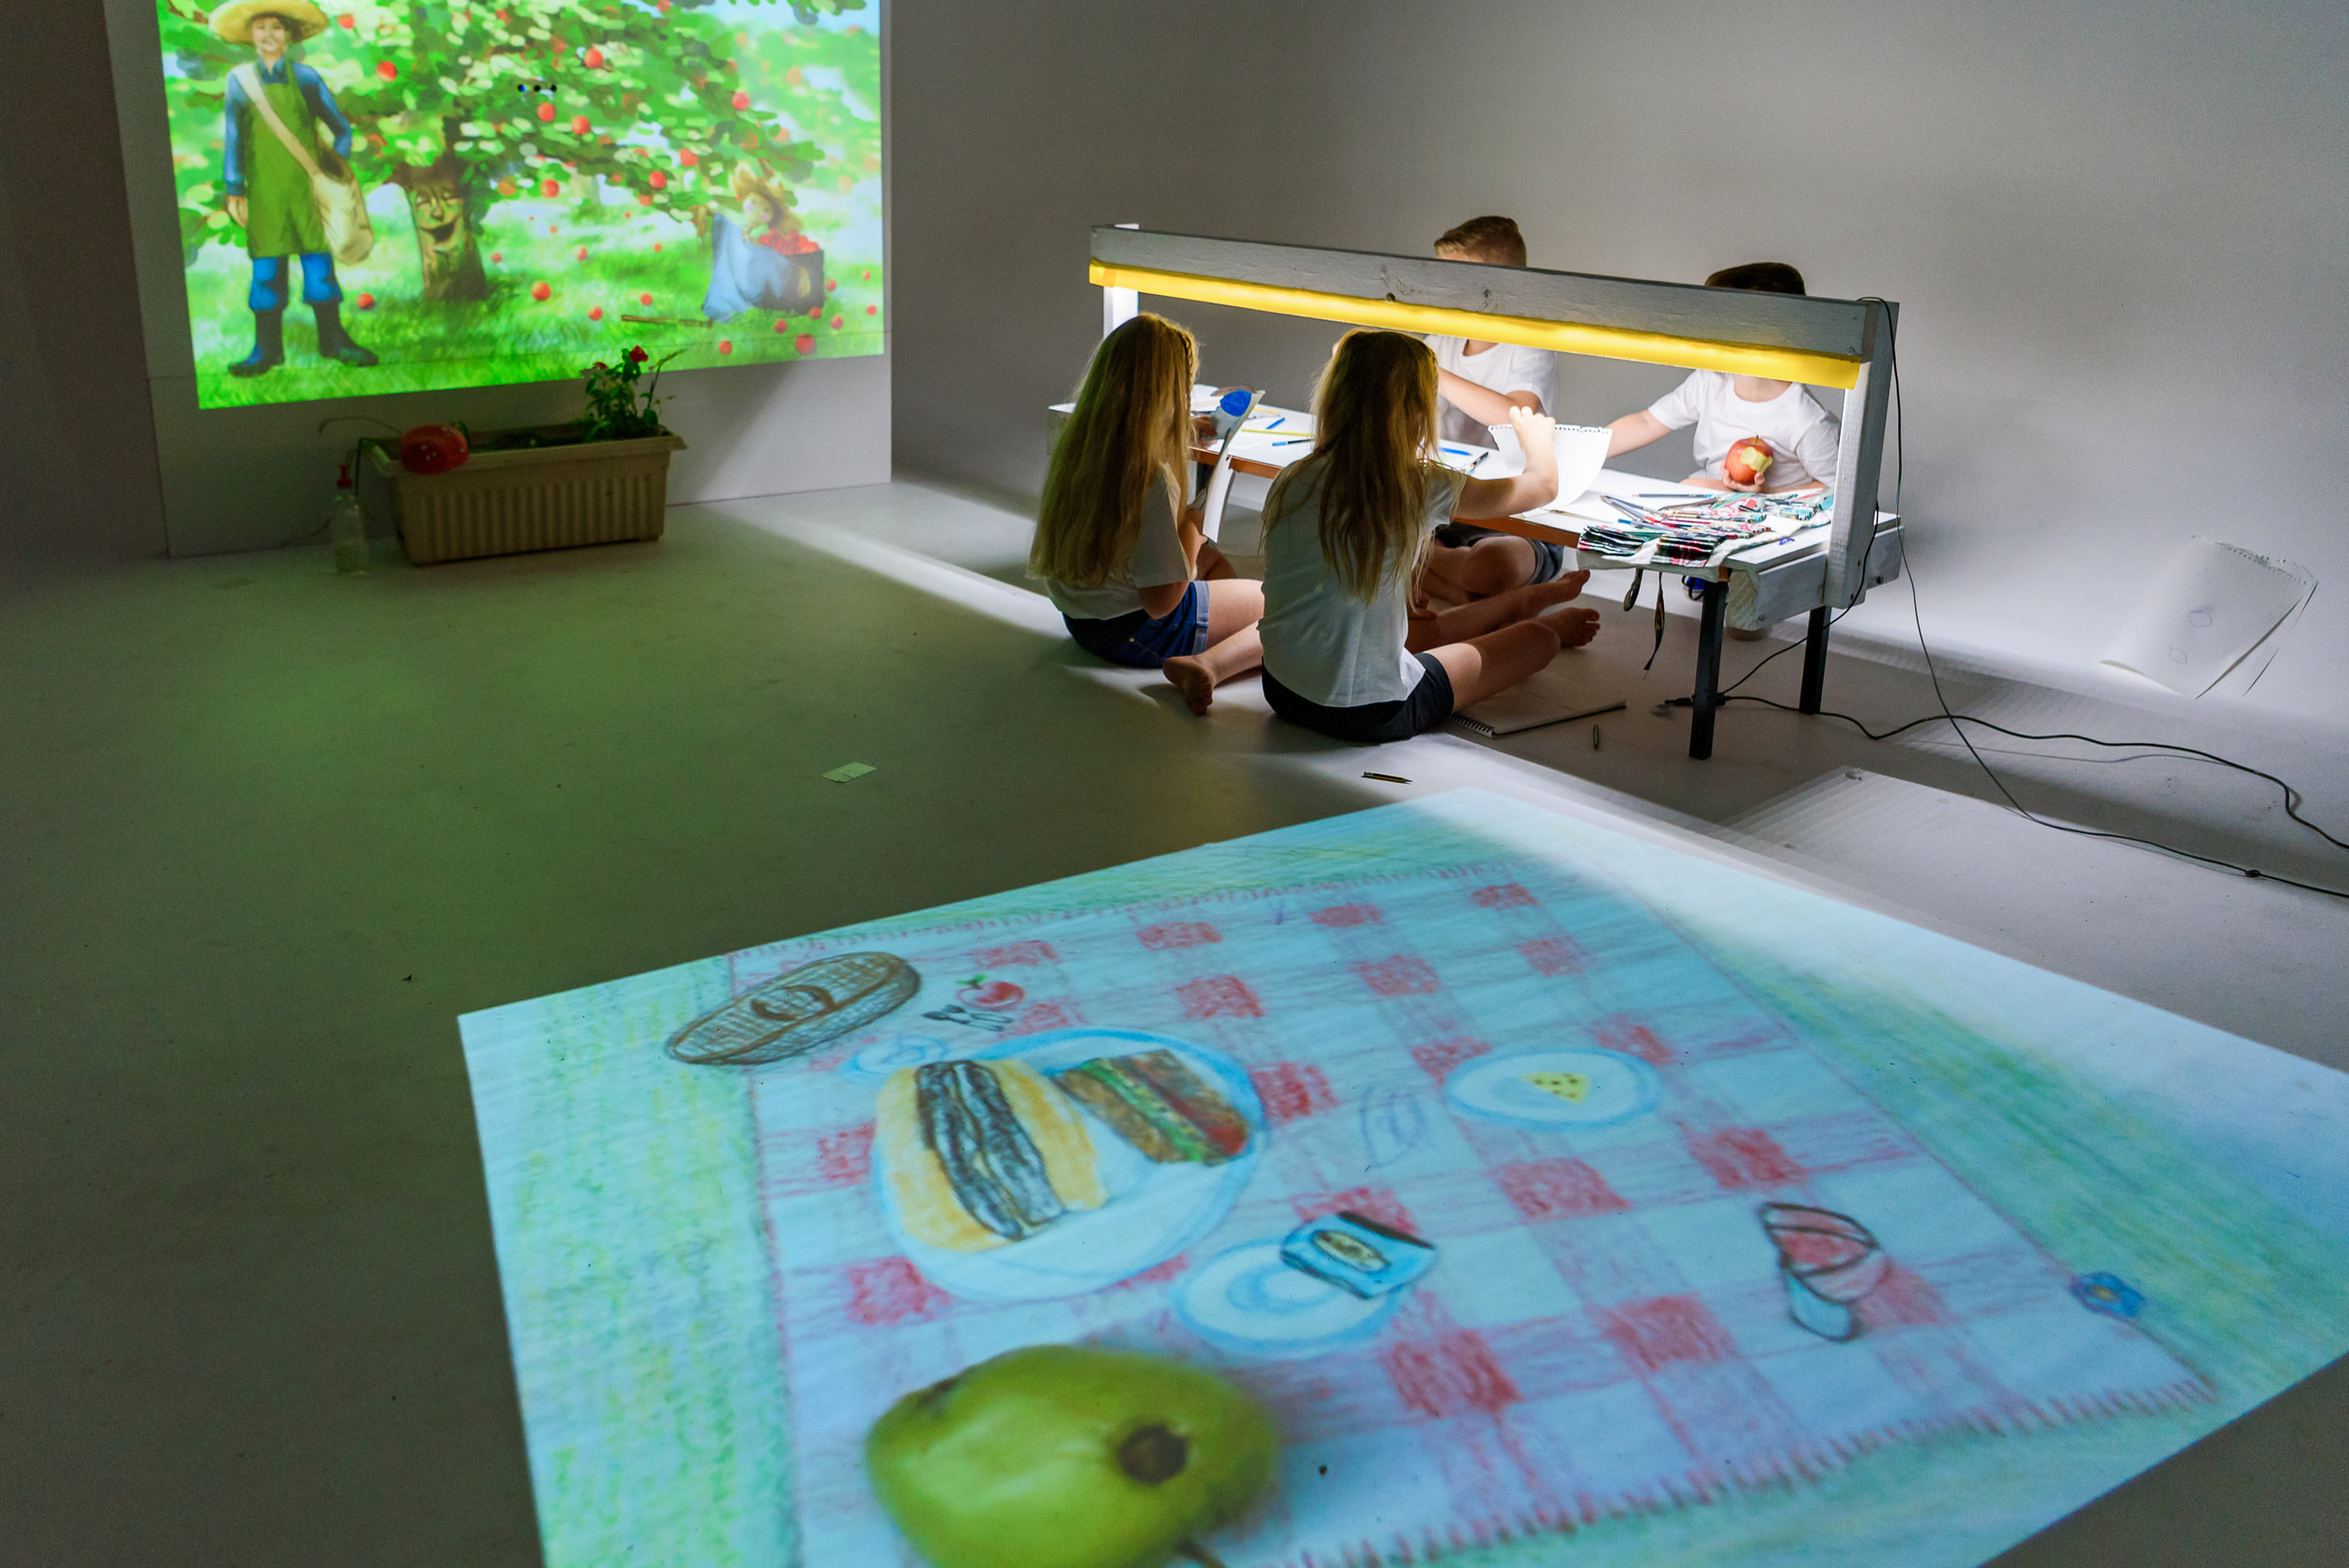 Using Children's Philosophy in tandem with the our interactive theatre amplifies the creative and learning potential of both children and educators.  Our interactive theatres adapt in real time to children's natural way of learning through role playing and educator's preferred method of applying their creative curriculum.